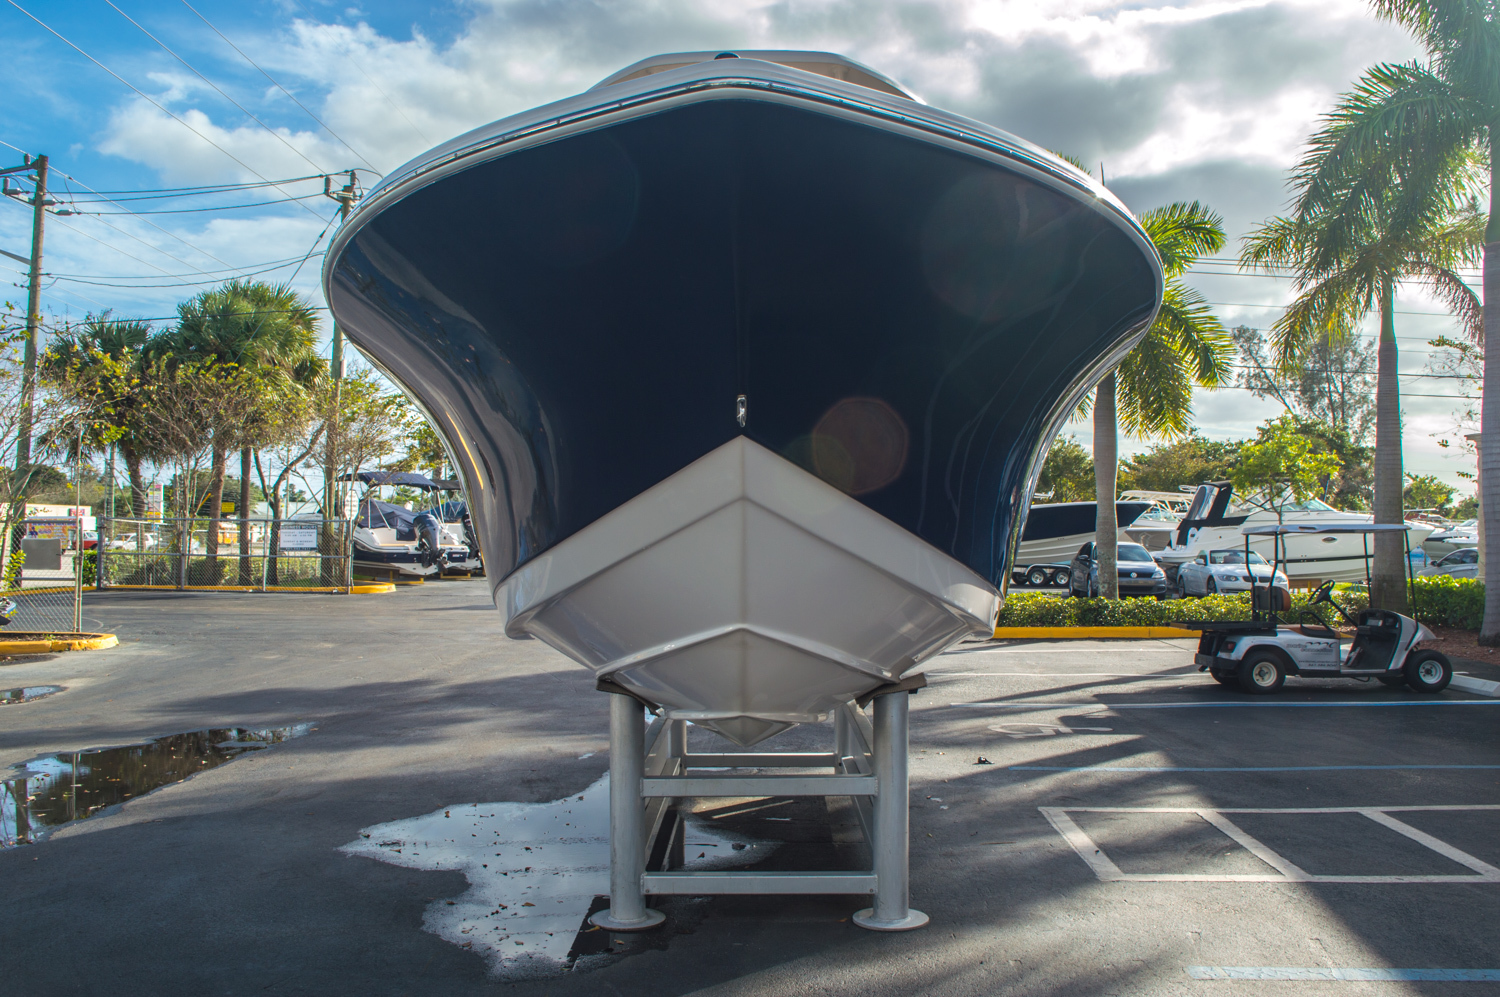 Thumbnail 1 for Used 2015 Tidewater 230 LXF Center Console boat for sale in West Palm Beach, FL